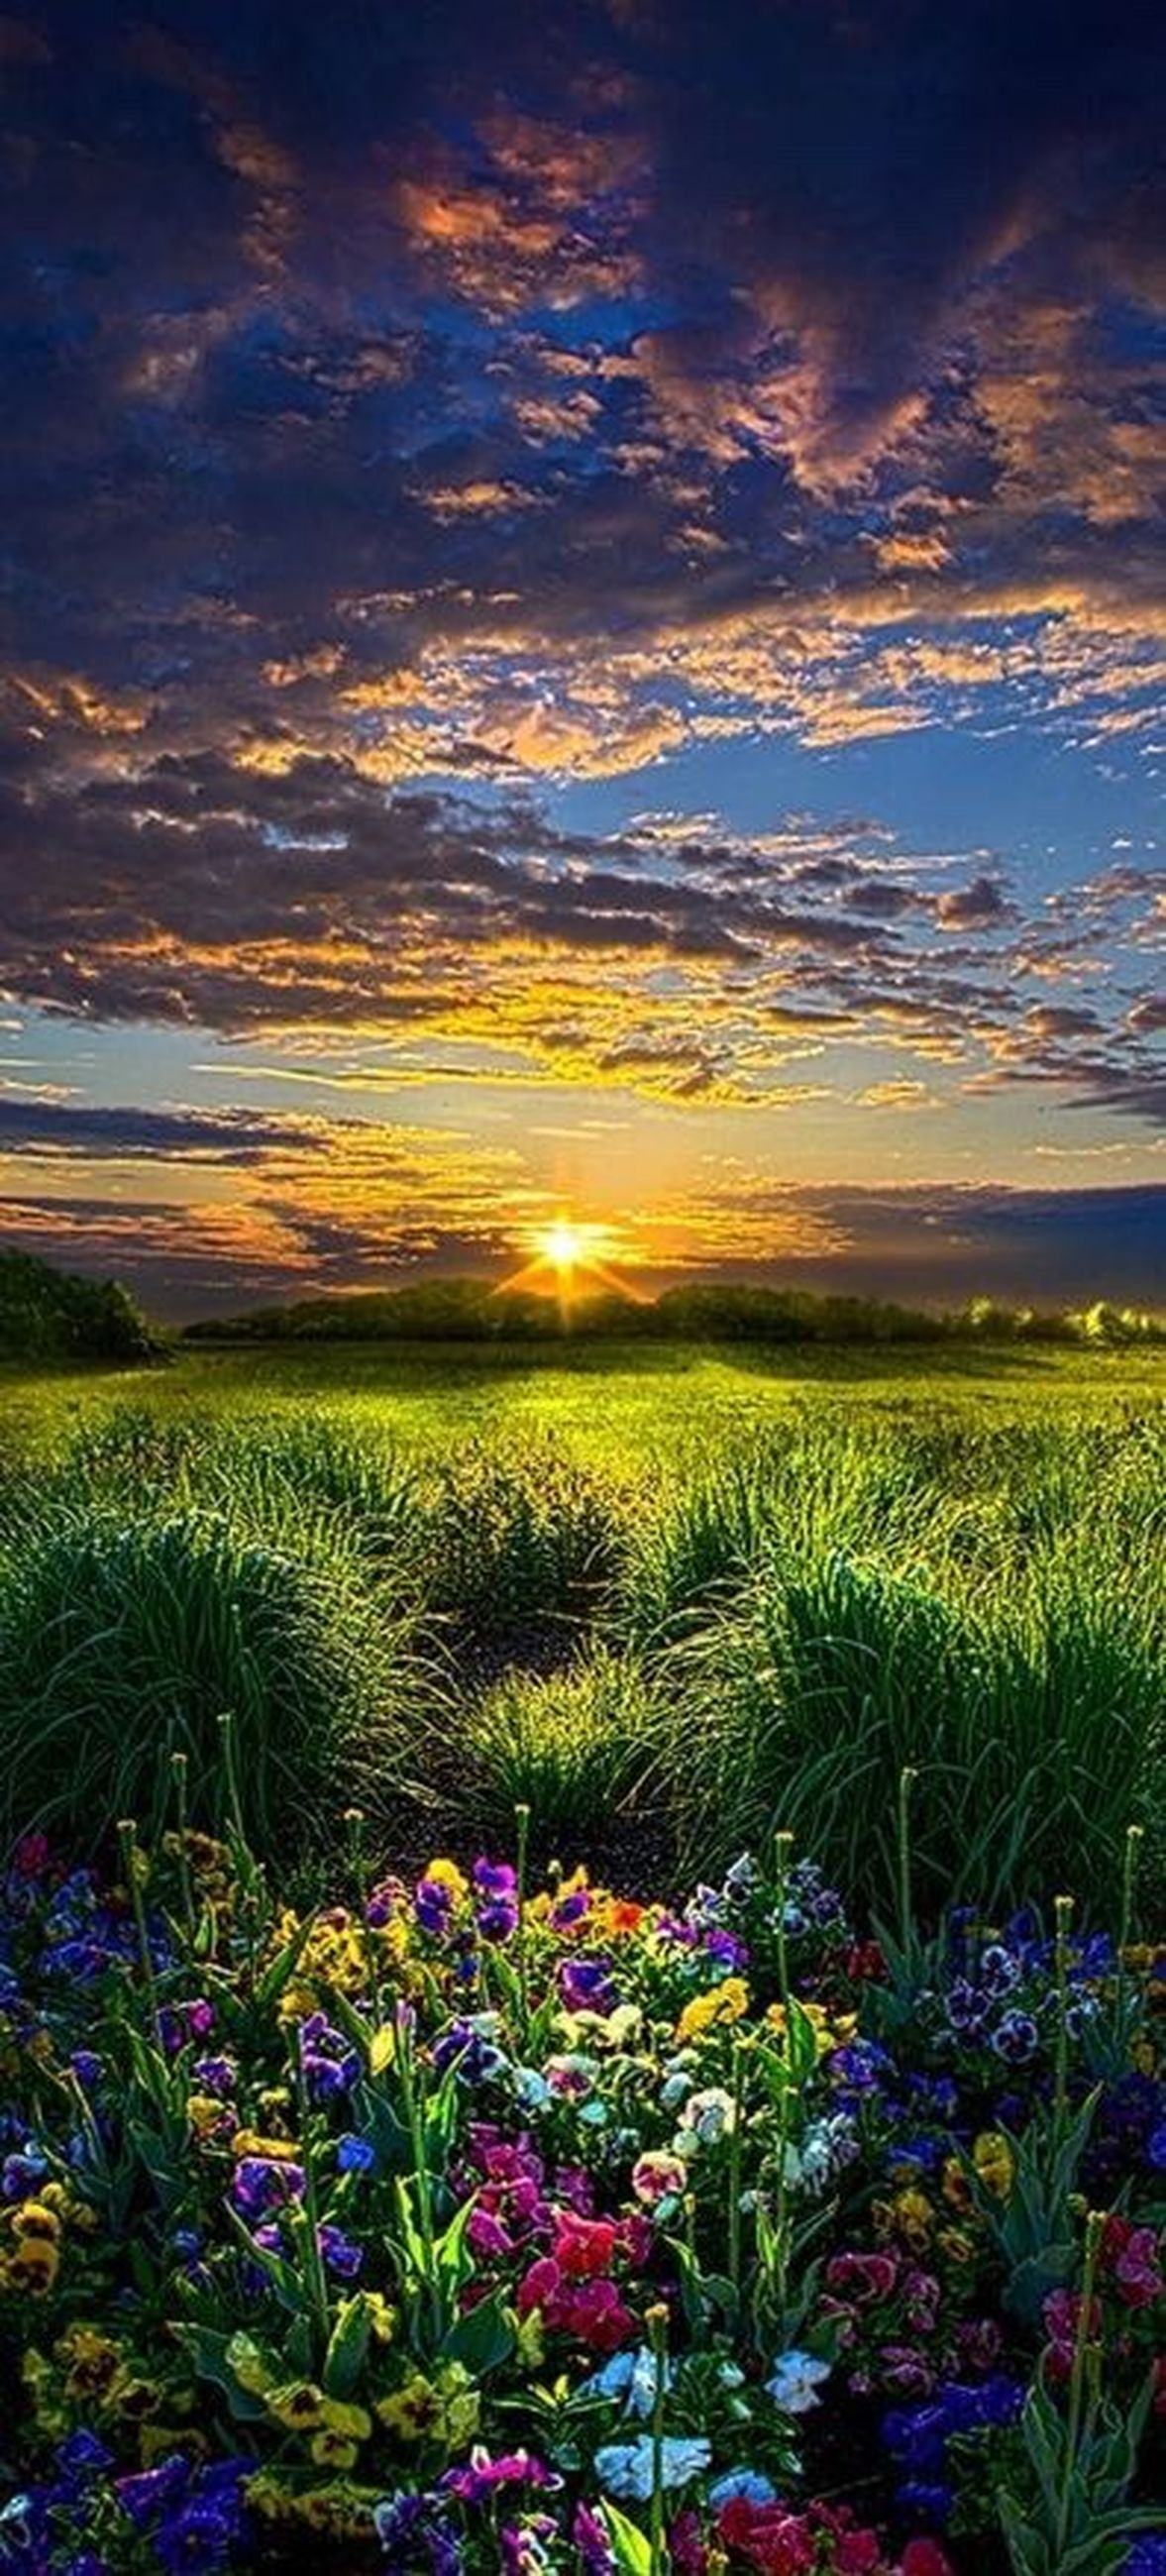 beauty in nature, flower, nature, multi colored, scenics, plant, field, rural scene, landscape, outdoors, sunset, travel destinations, beauty, cloud - sky, growth, horizon over water, agriculture, no people, sky, sea, flower head, beach, close-up, single tree, day